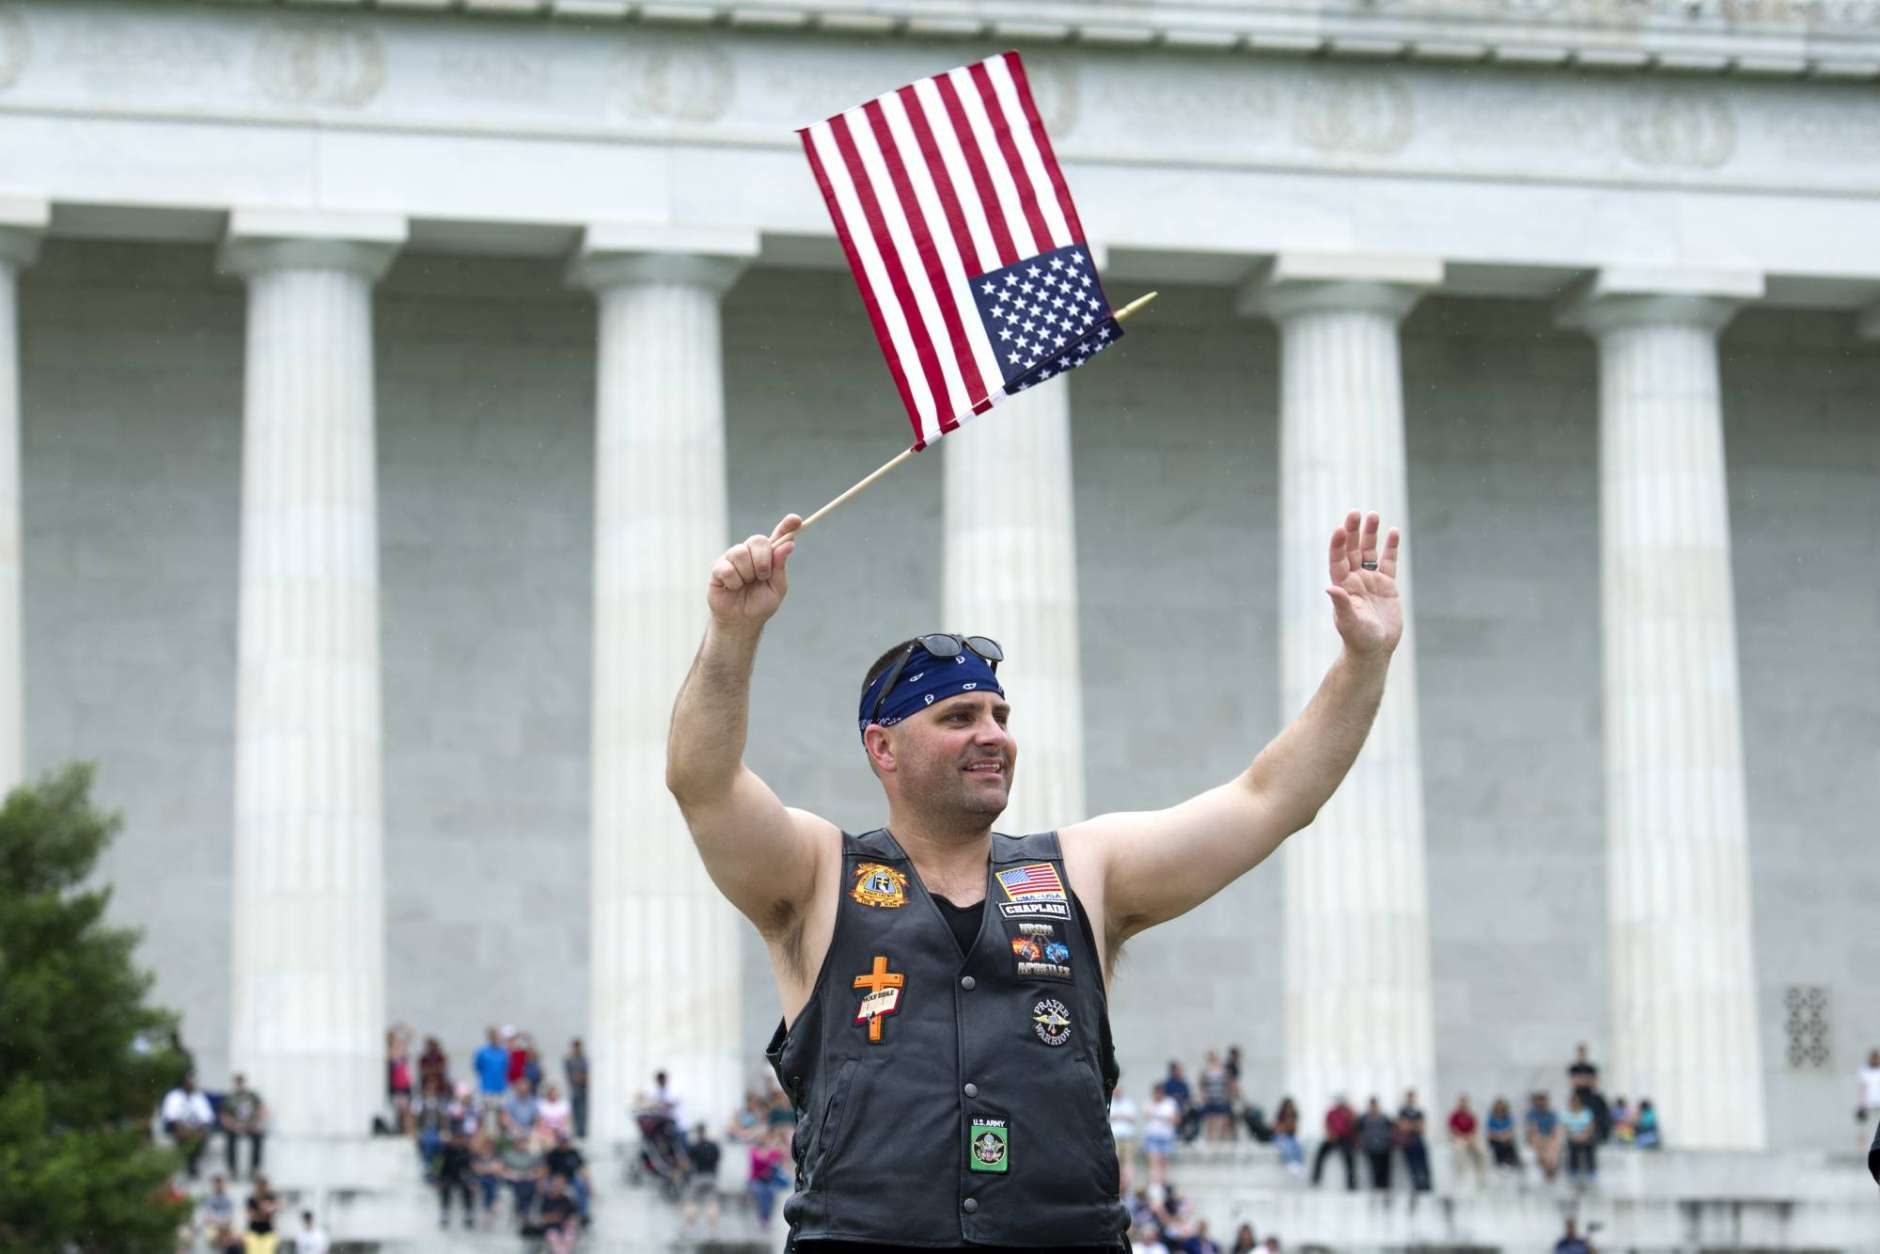 A motorcyclist in front of the Lincoln Memorial, waves to riders as they participate in the 30th anniversary of the Rolling Thunder 'Ride for Freedom' demonstration in Washington, Sunday, May 28, 2017. Rolling Thunder seeks to bring full accountability for all U.S. prisoners of war and missing in action (POW/MIA) soldiers. (AP Photo/Cliff Owen)